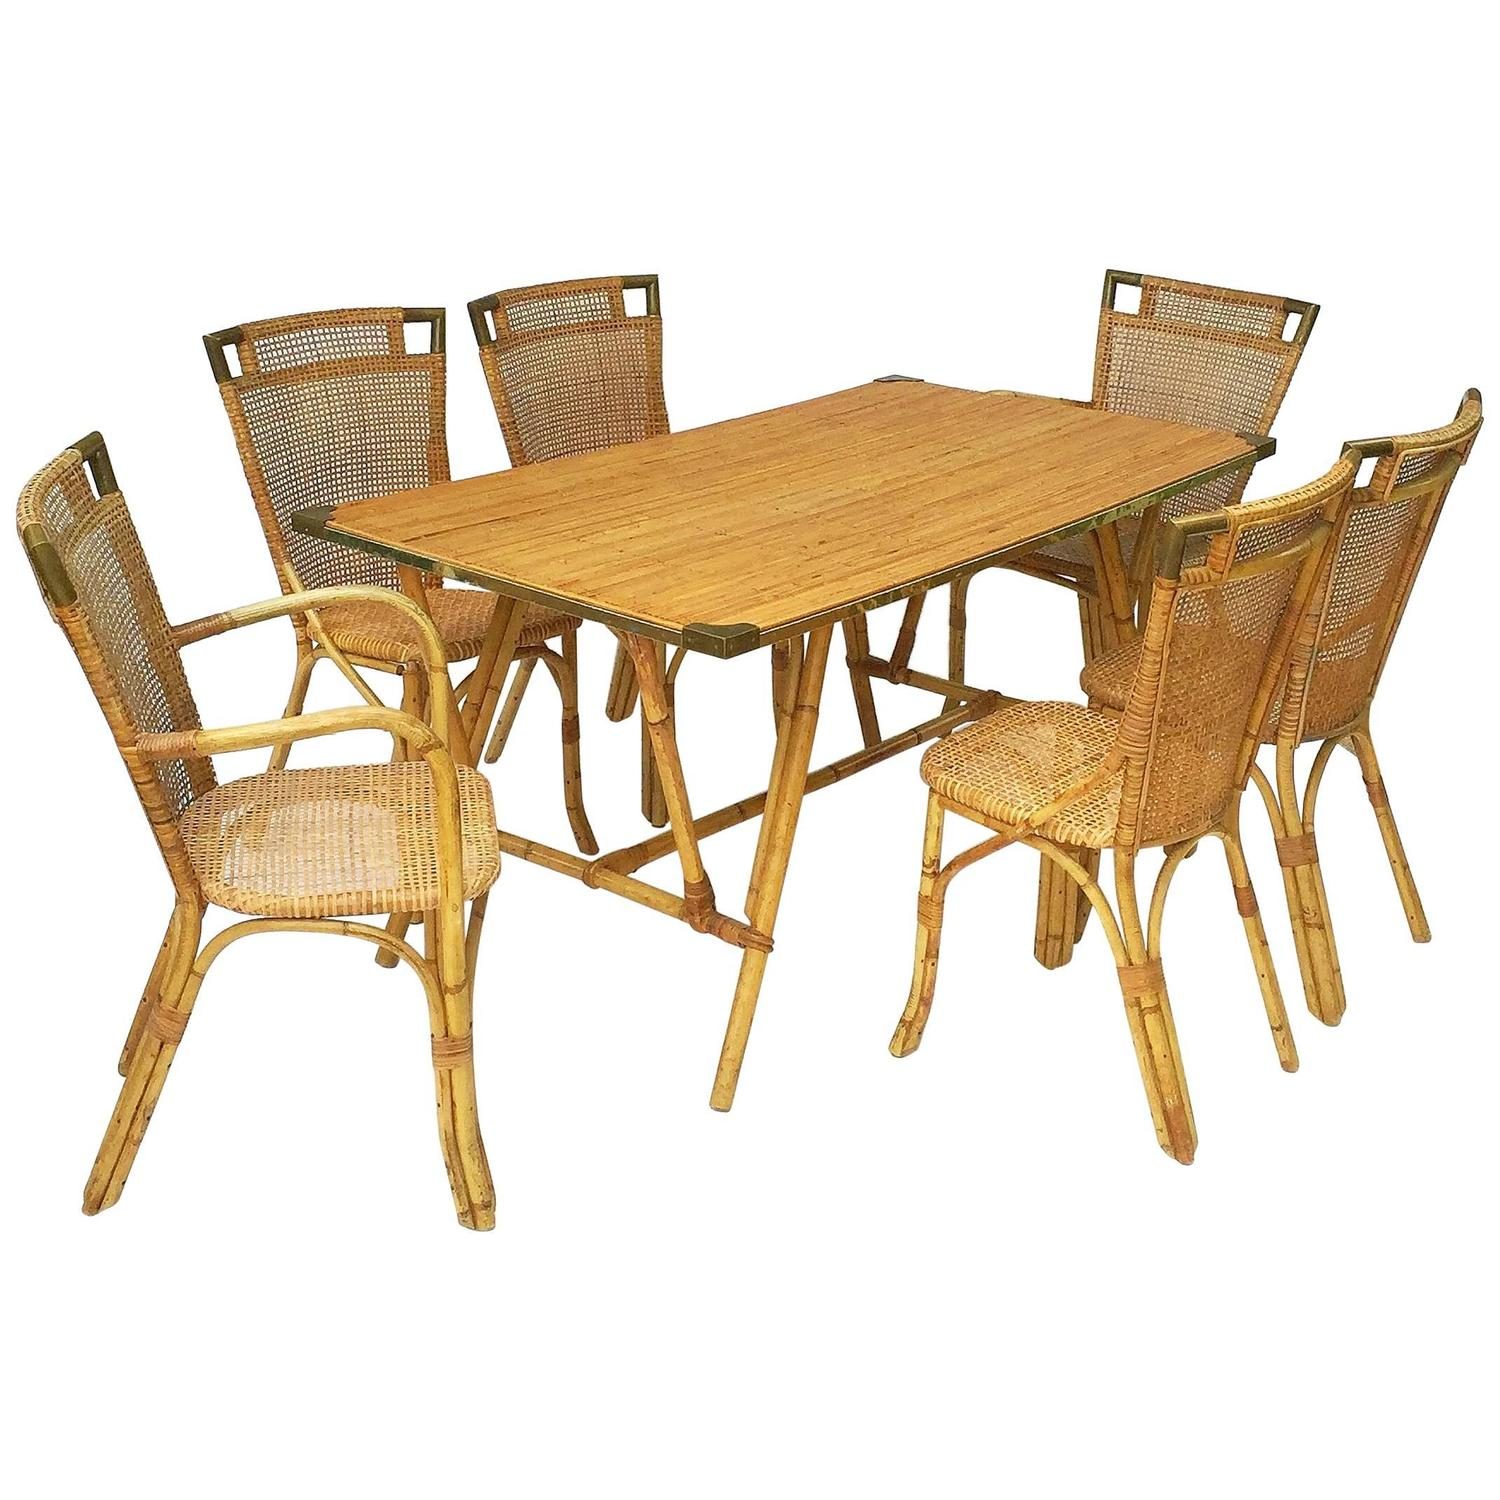 French Bamboo Table and Chairs Set (Louis Sognot) - The Antique Swan